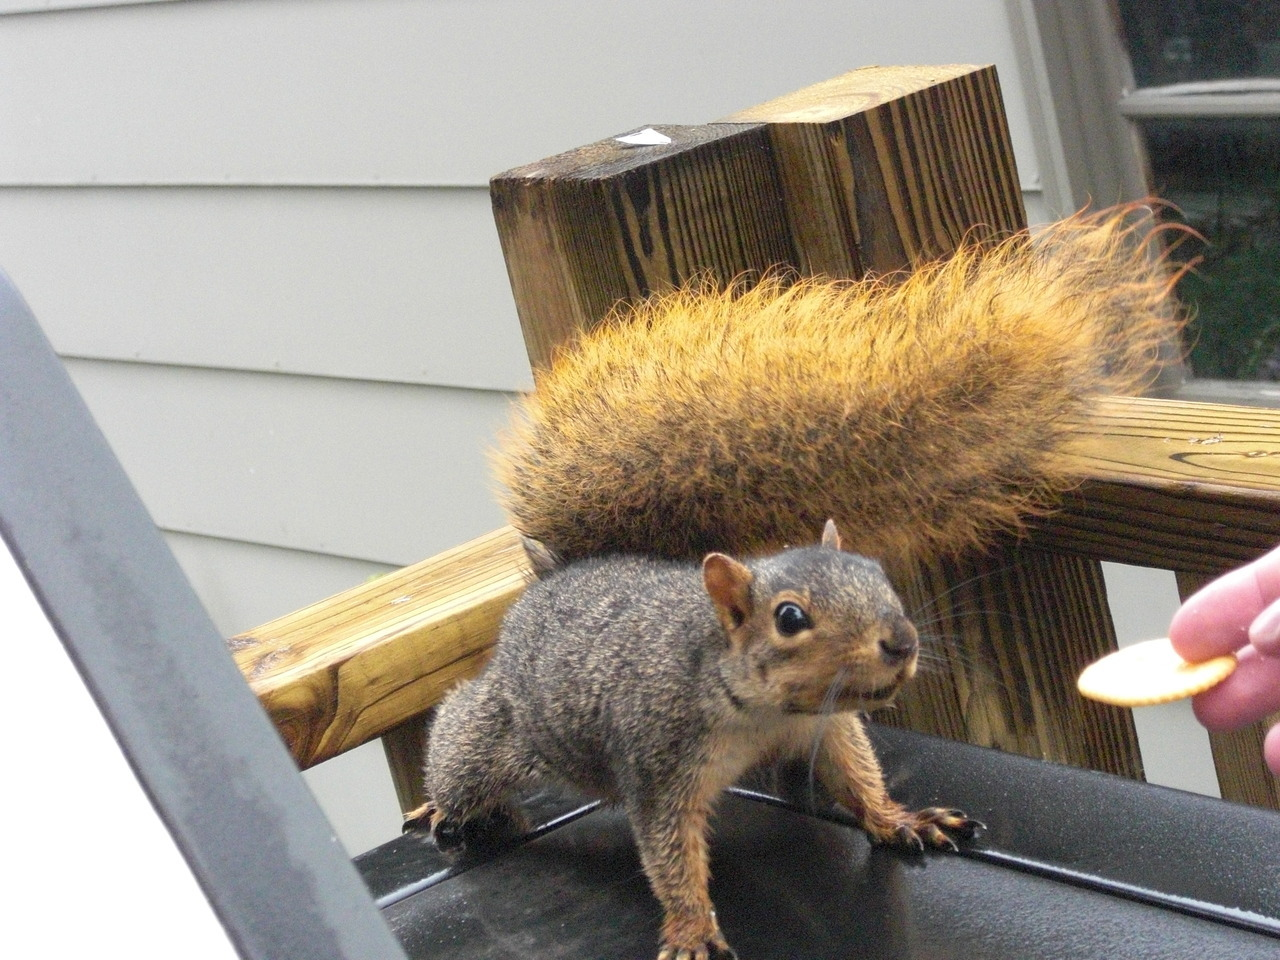 We feed this squirrel.